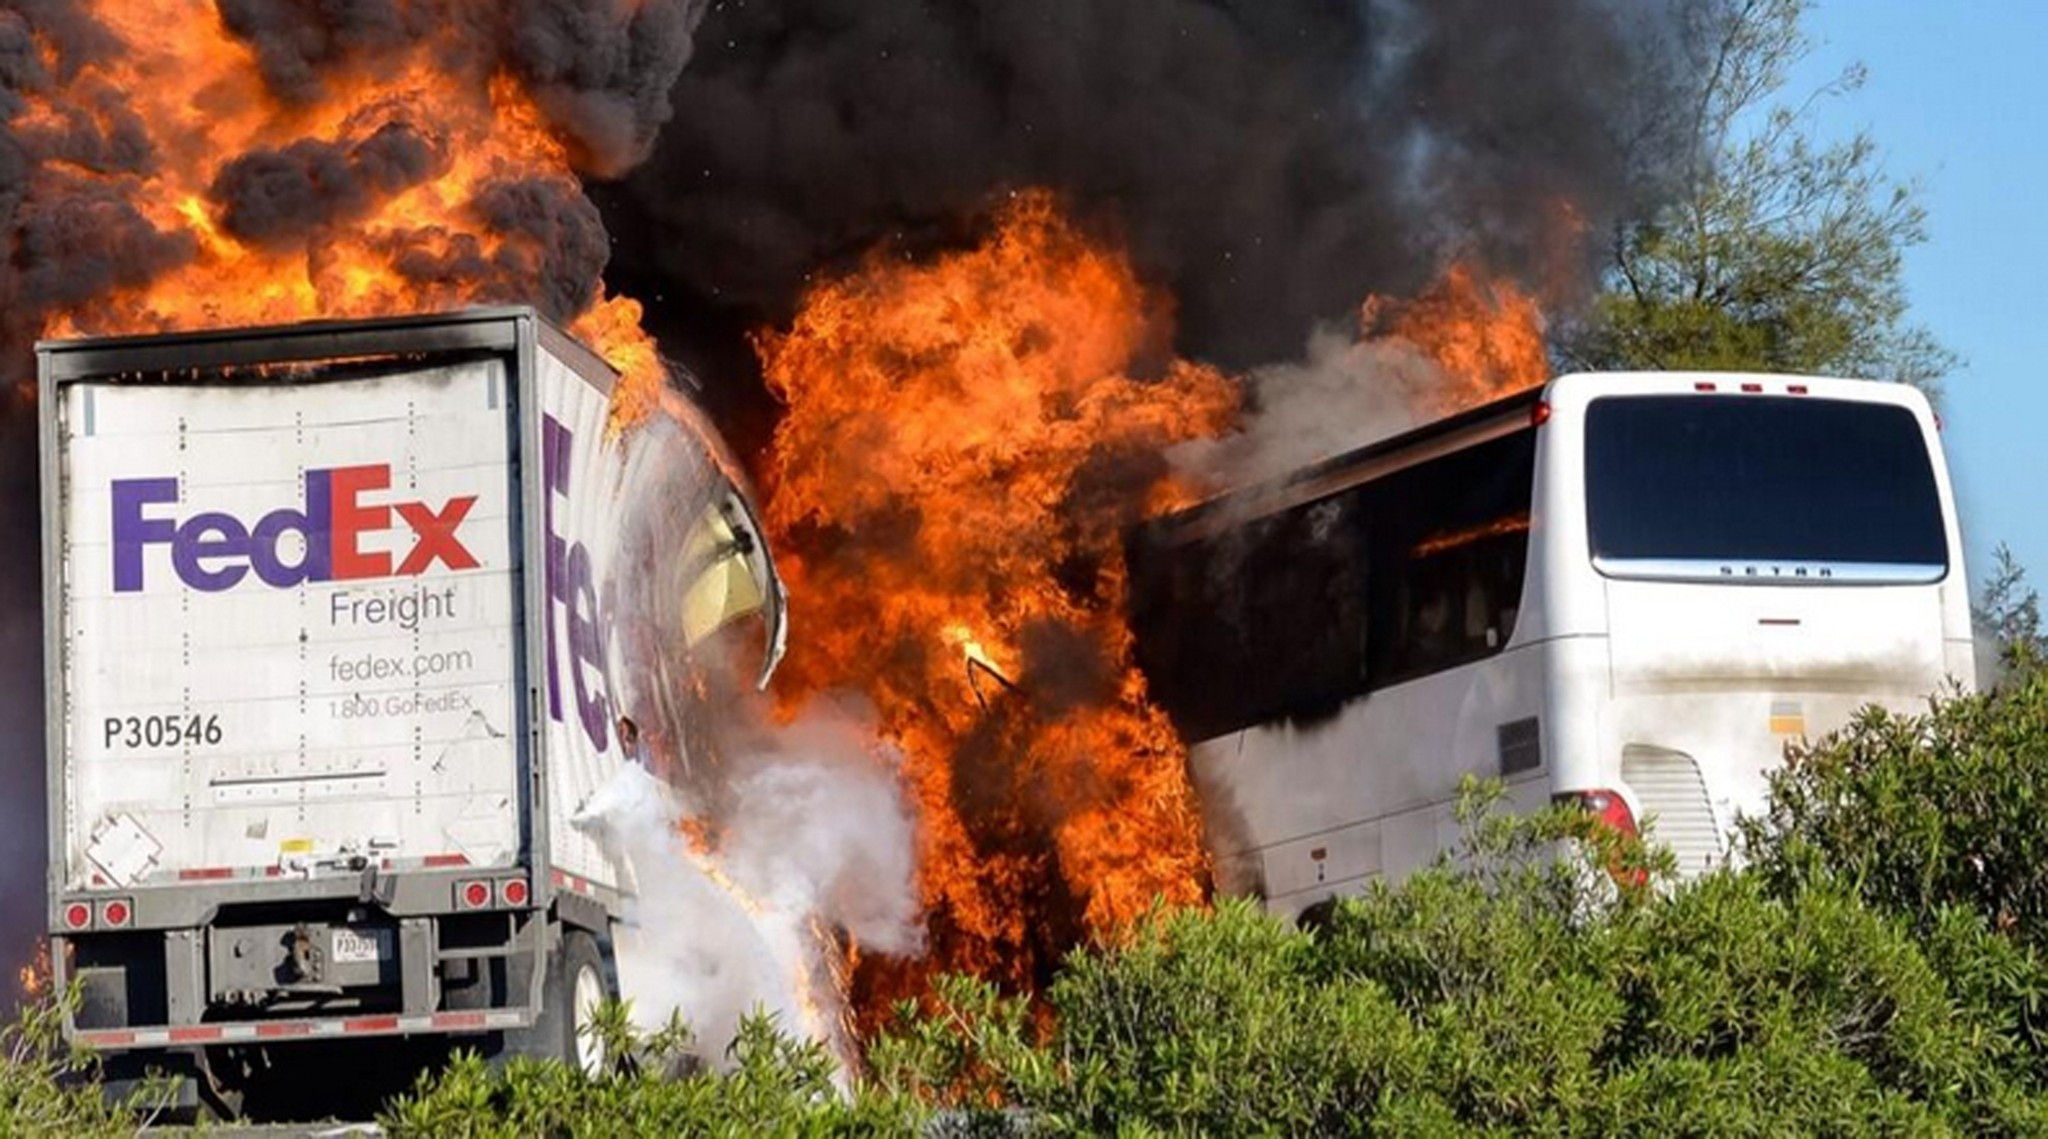 California bus crash: Report of fire in FedEx truck adds to mystery